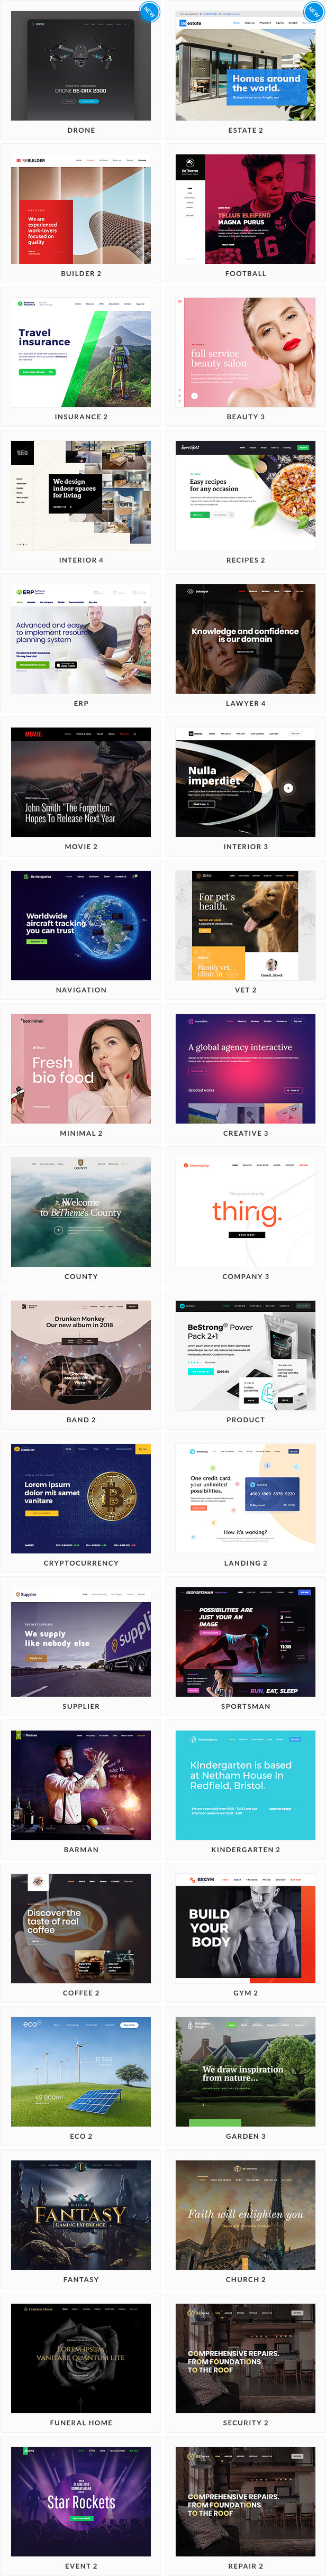 قالب چند مظوره بی 21.1.4 | BeTheme – Responsive Multi-Purpose